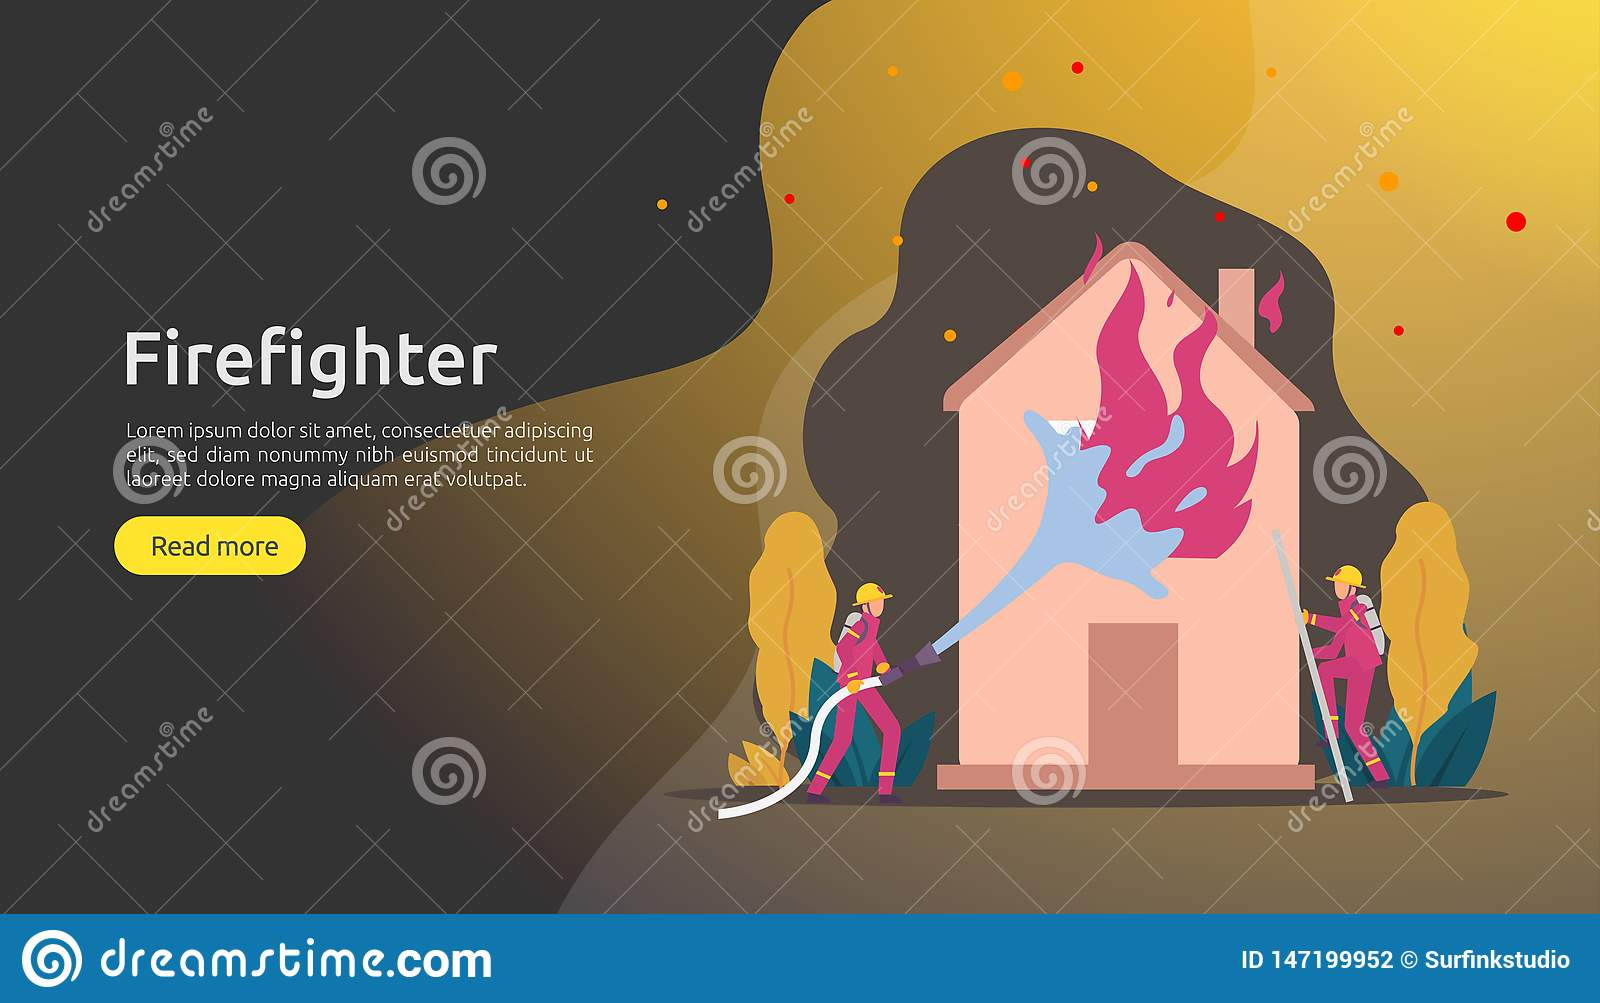 Firefighter using water spray from hose for fire fighting burning house. fireman in uniform, fire department rescuer. illustration